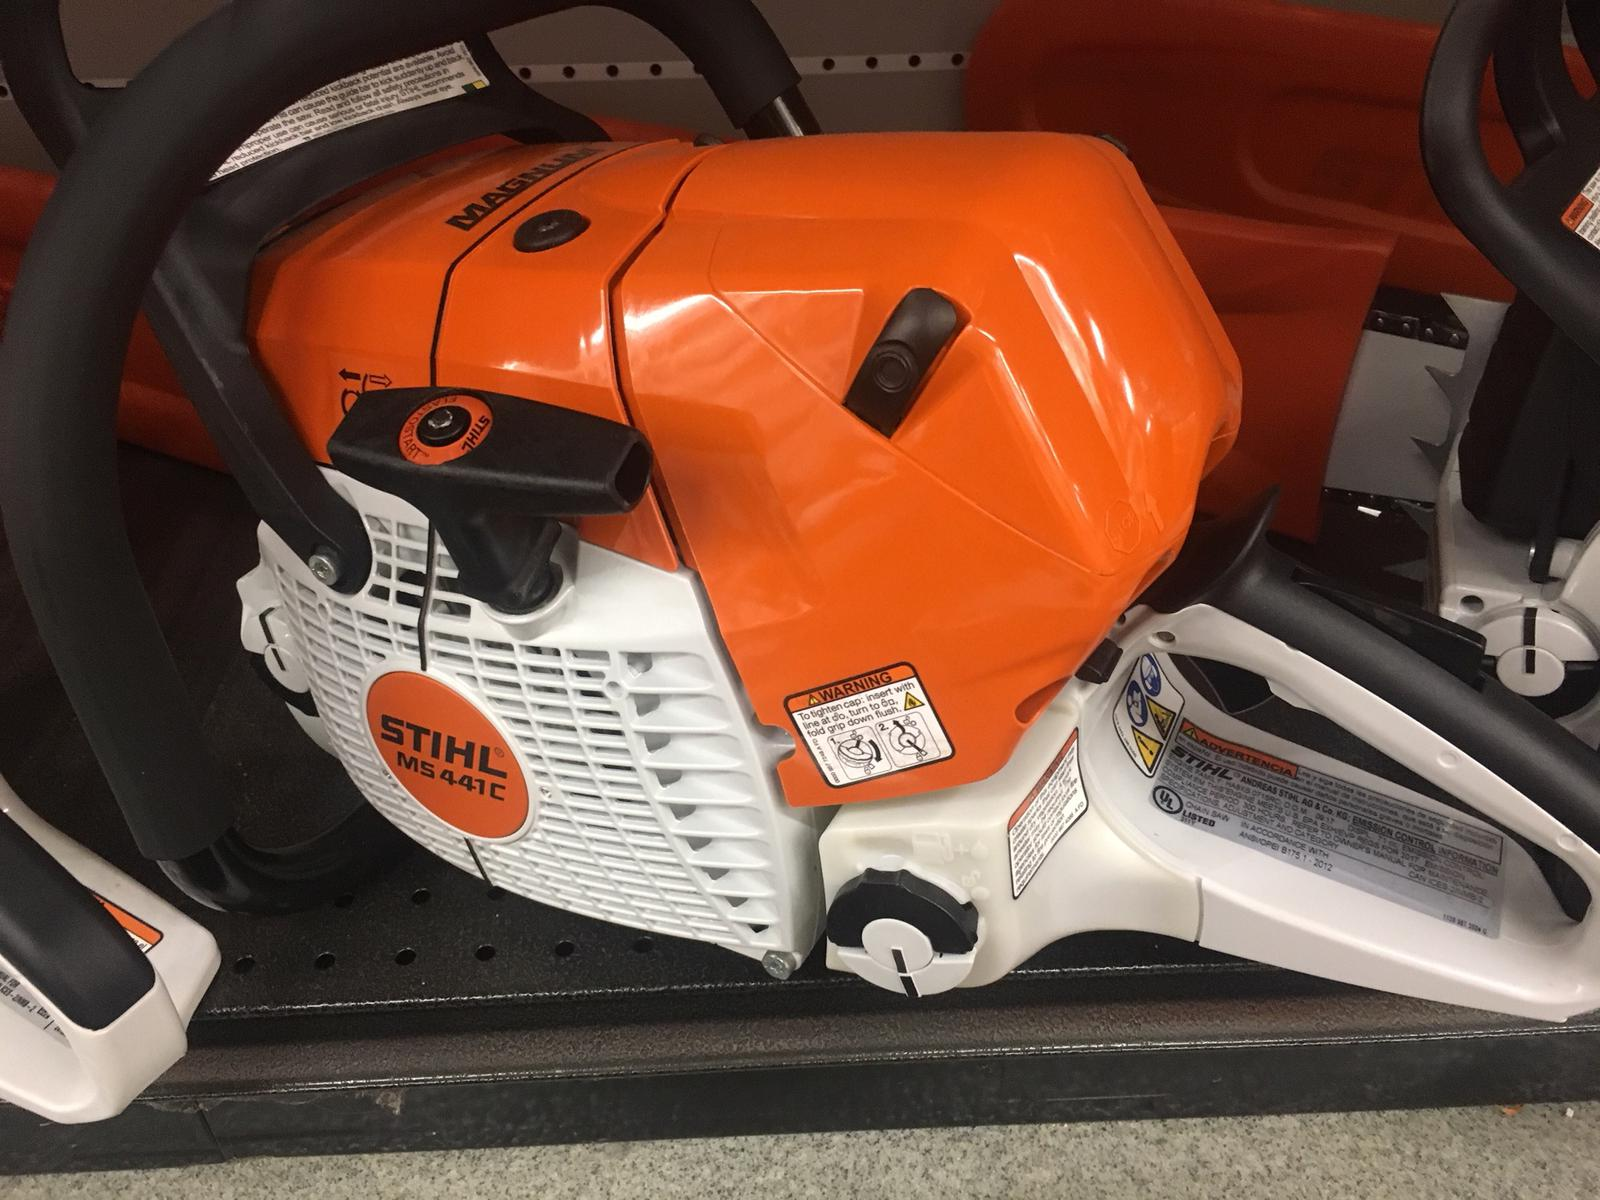 2018 stihl ms 441 c-m magnum® for sale in old saybrook, ct. new